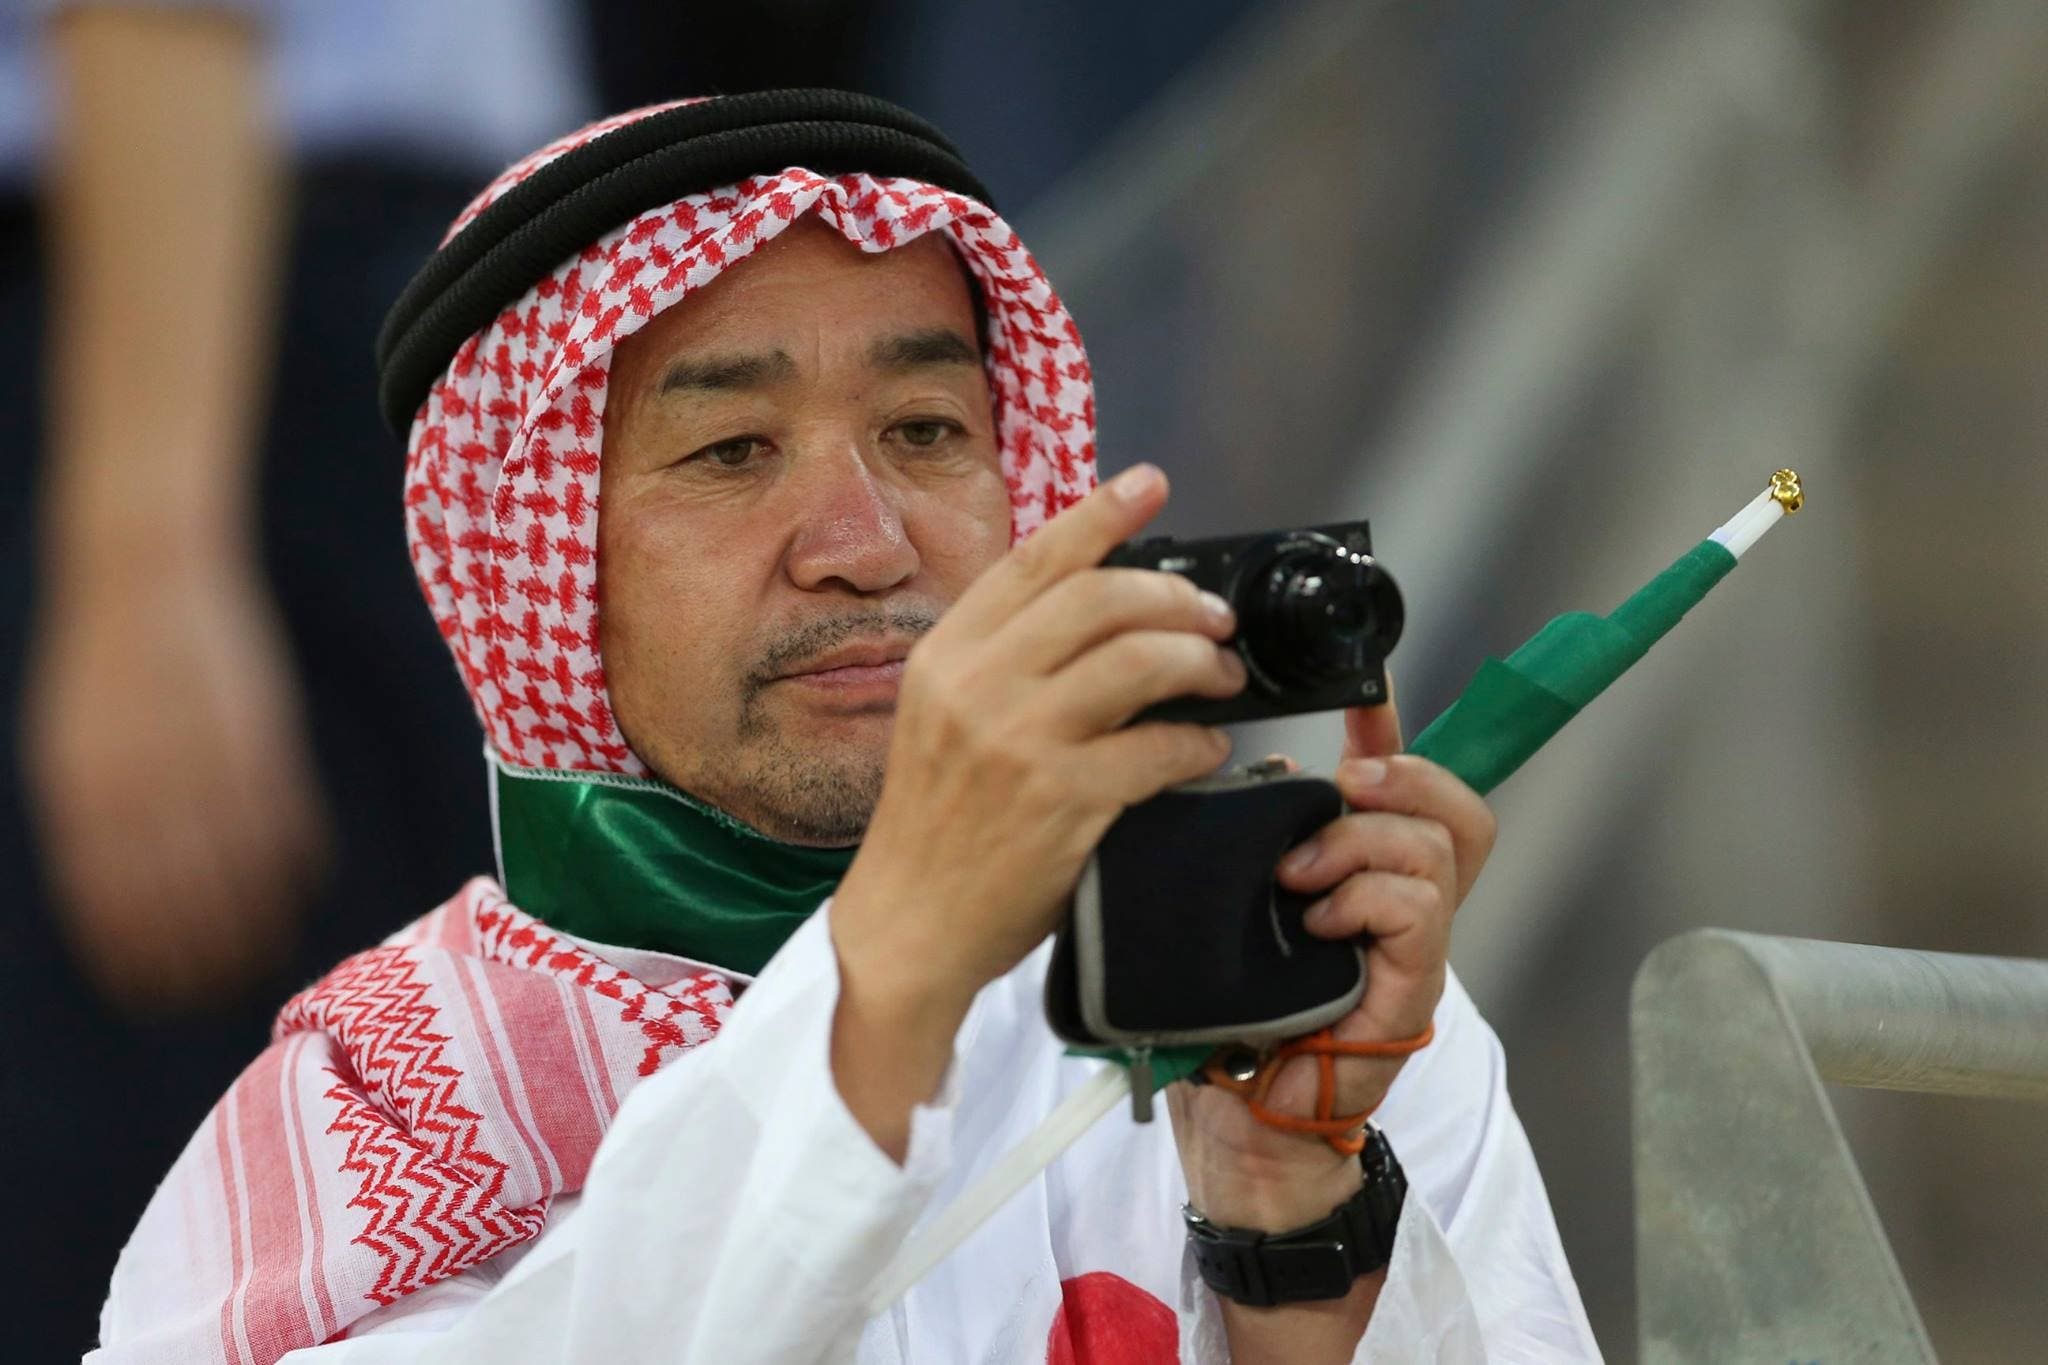 A Japanese fan wears Saudi traditional clothes takes a picture. (AP)